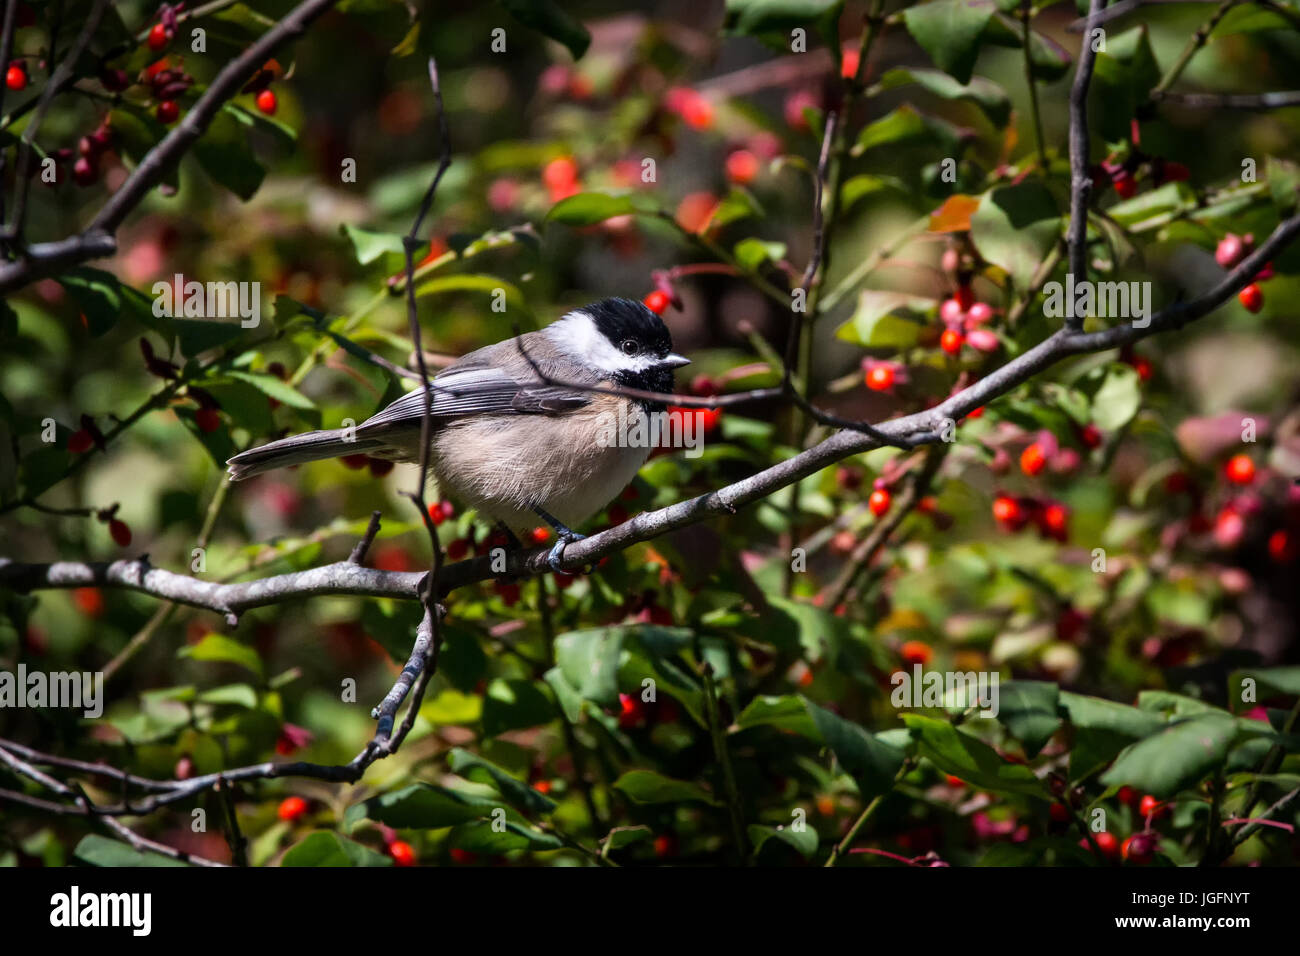 A chickadee perches on a tree branch. - Stock Image